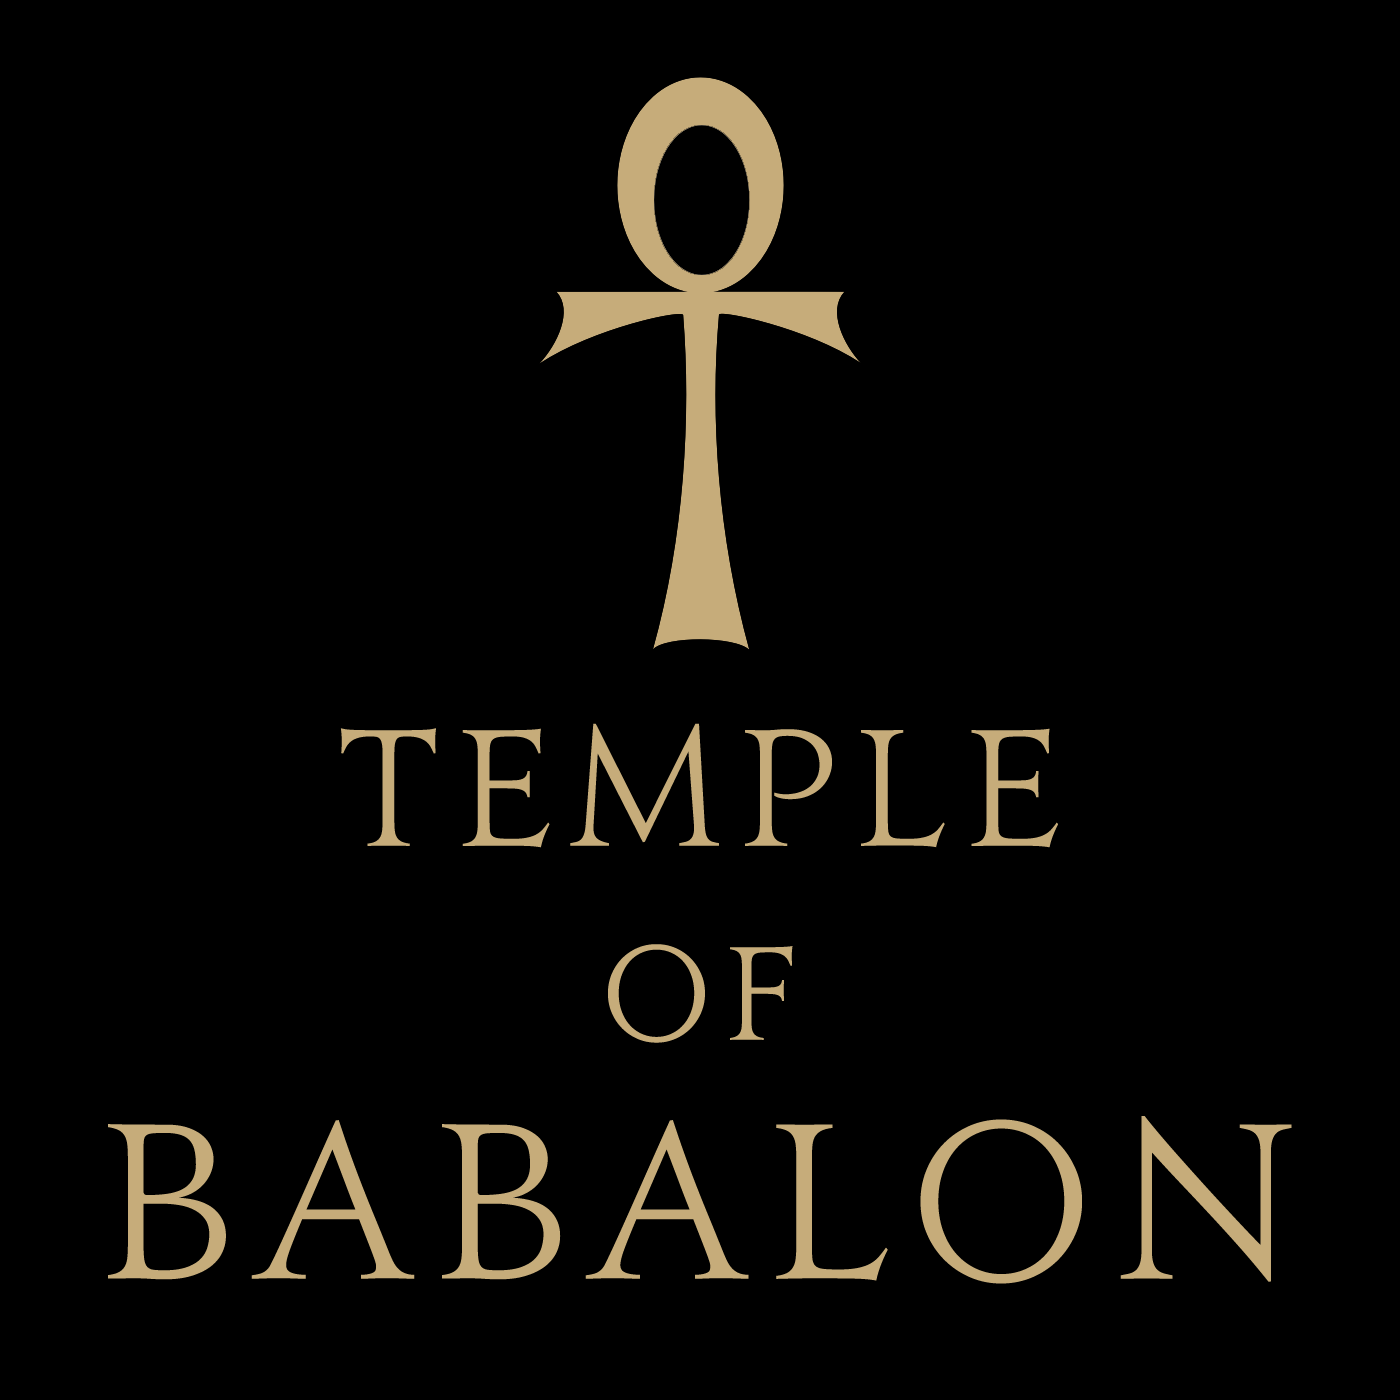 Temple of Babalon www.ordoastri.org